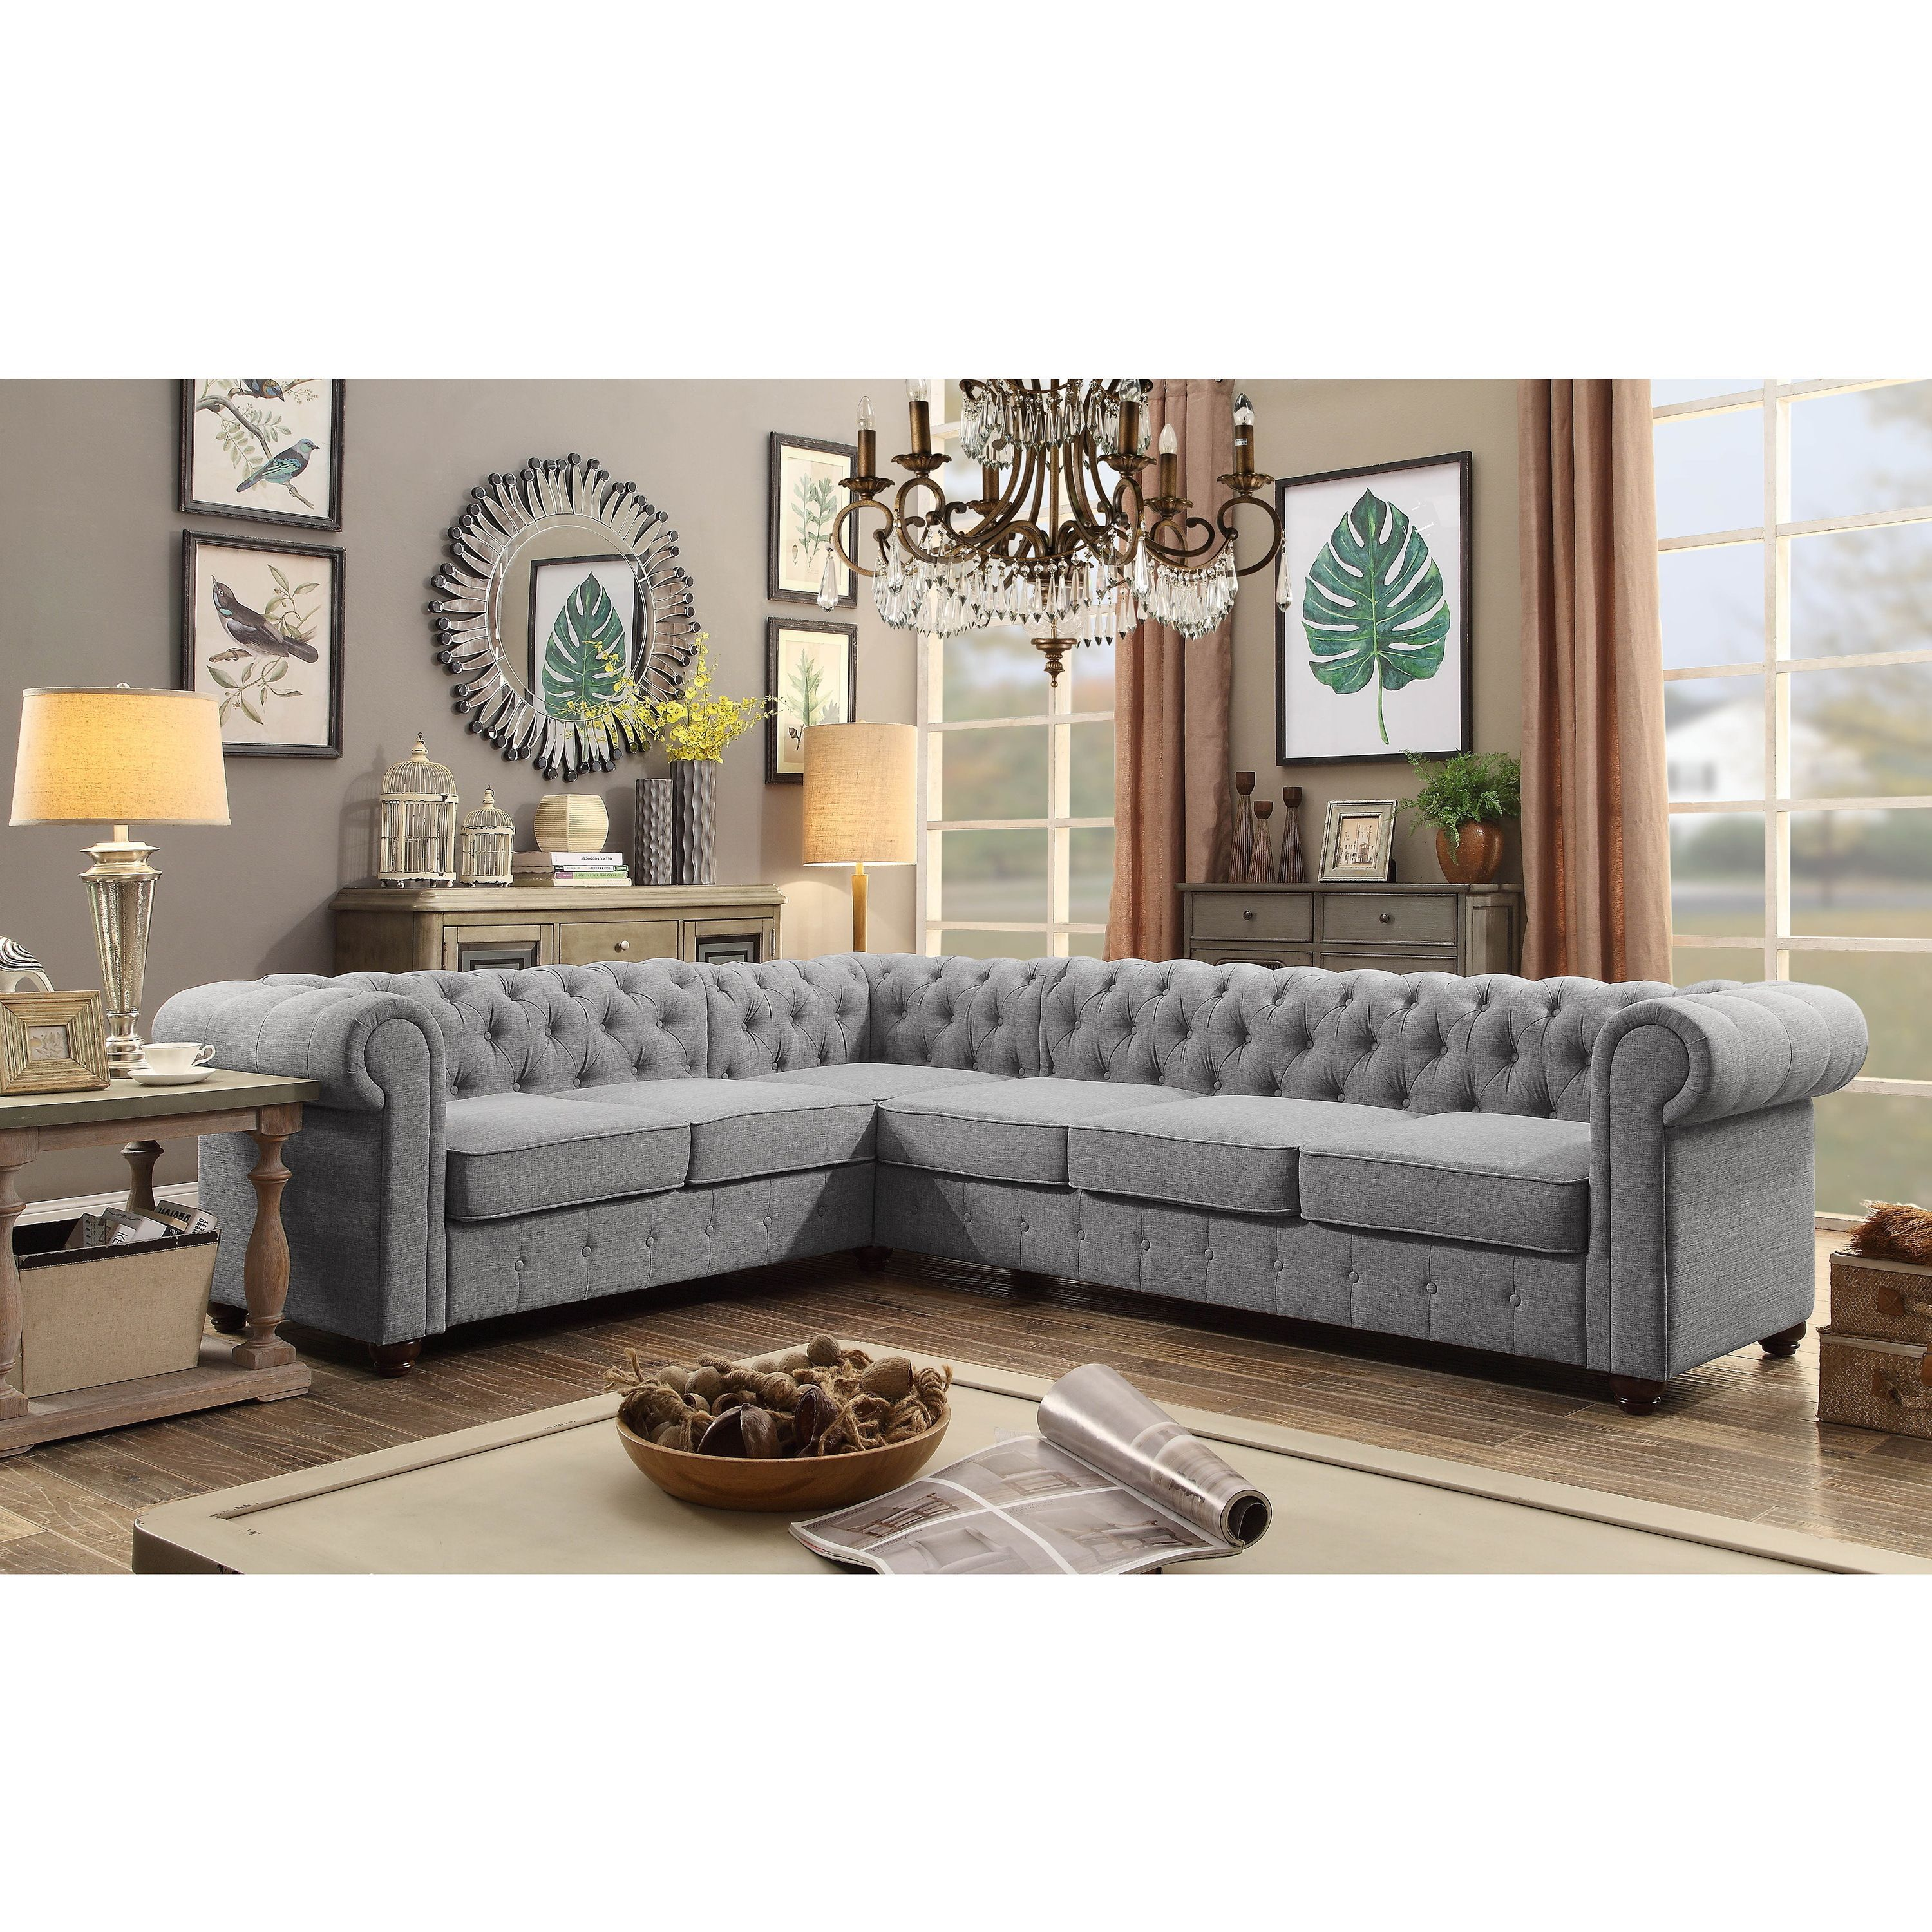 Moser Bay Furniture Linen 6 seat Sectional Sofa Set